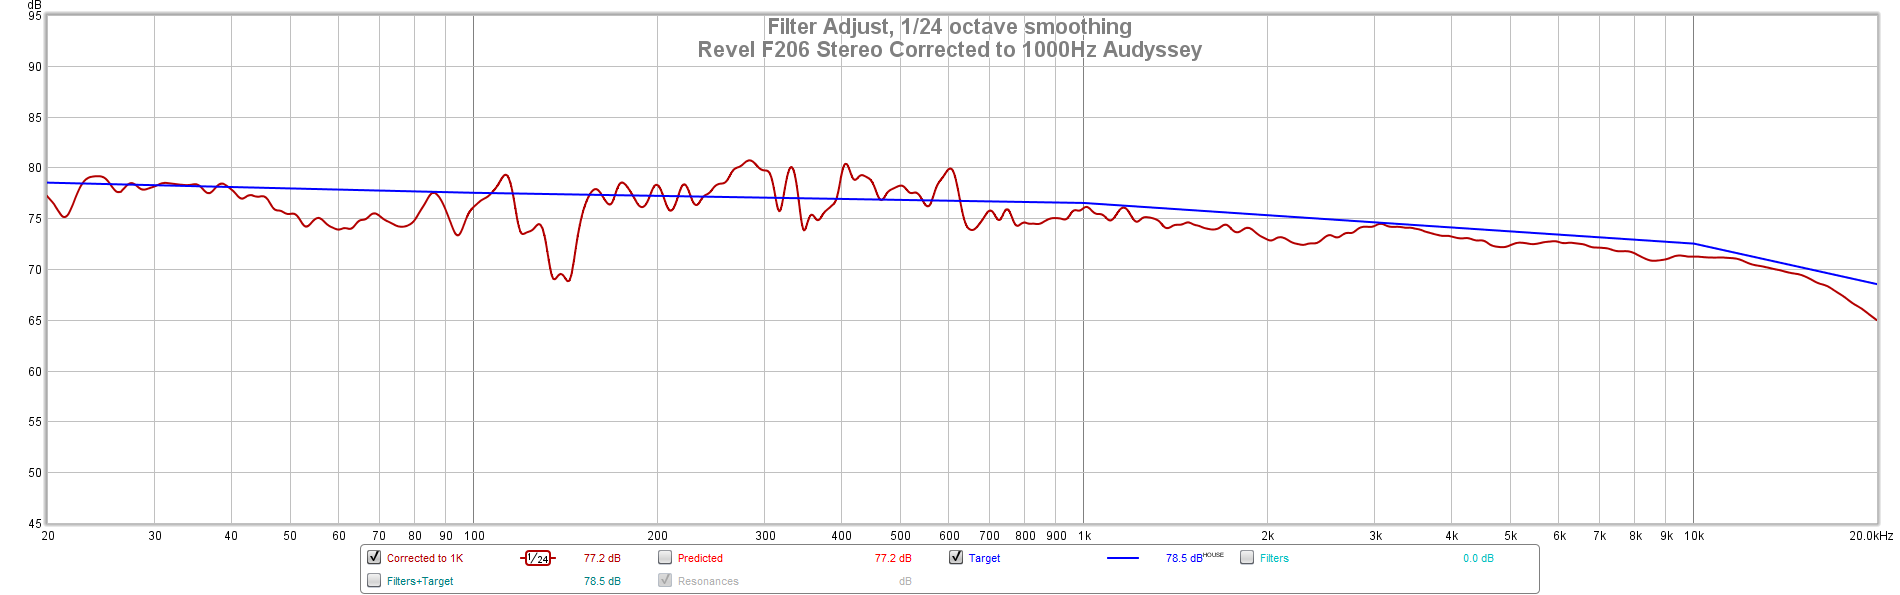 Revel F206 Stereo Corrected to 1000Hz Audyssey.png